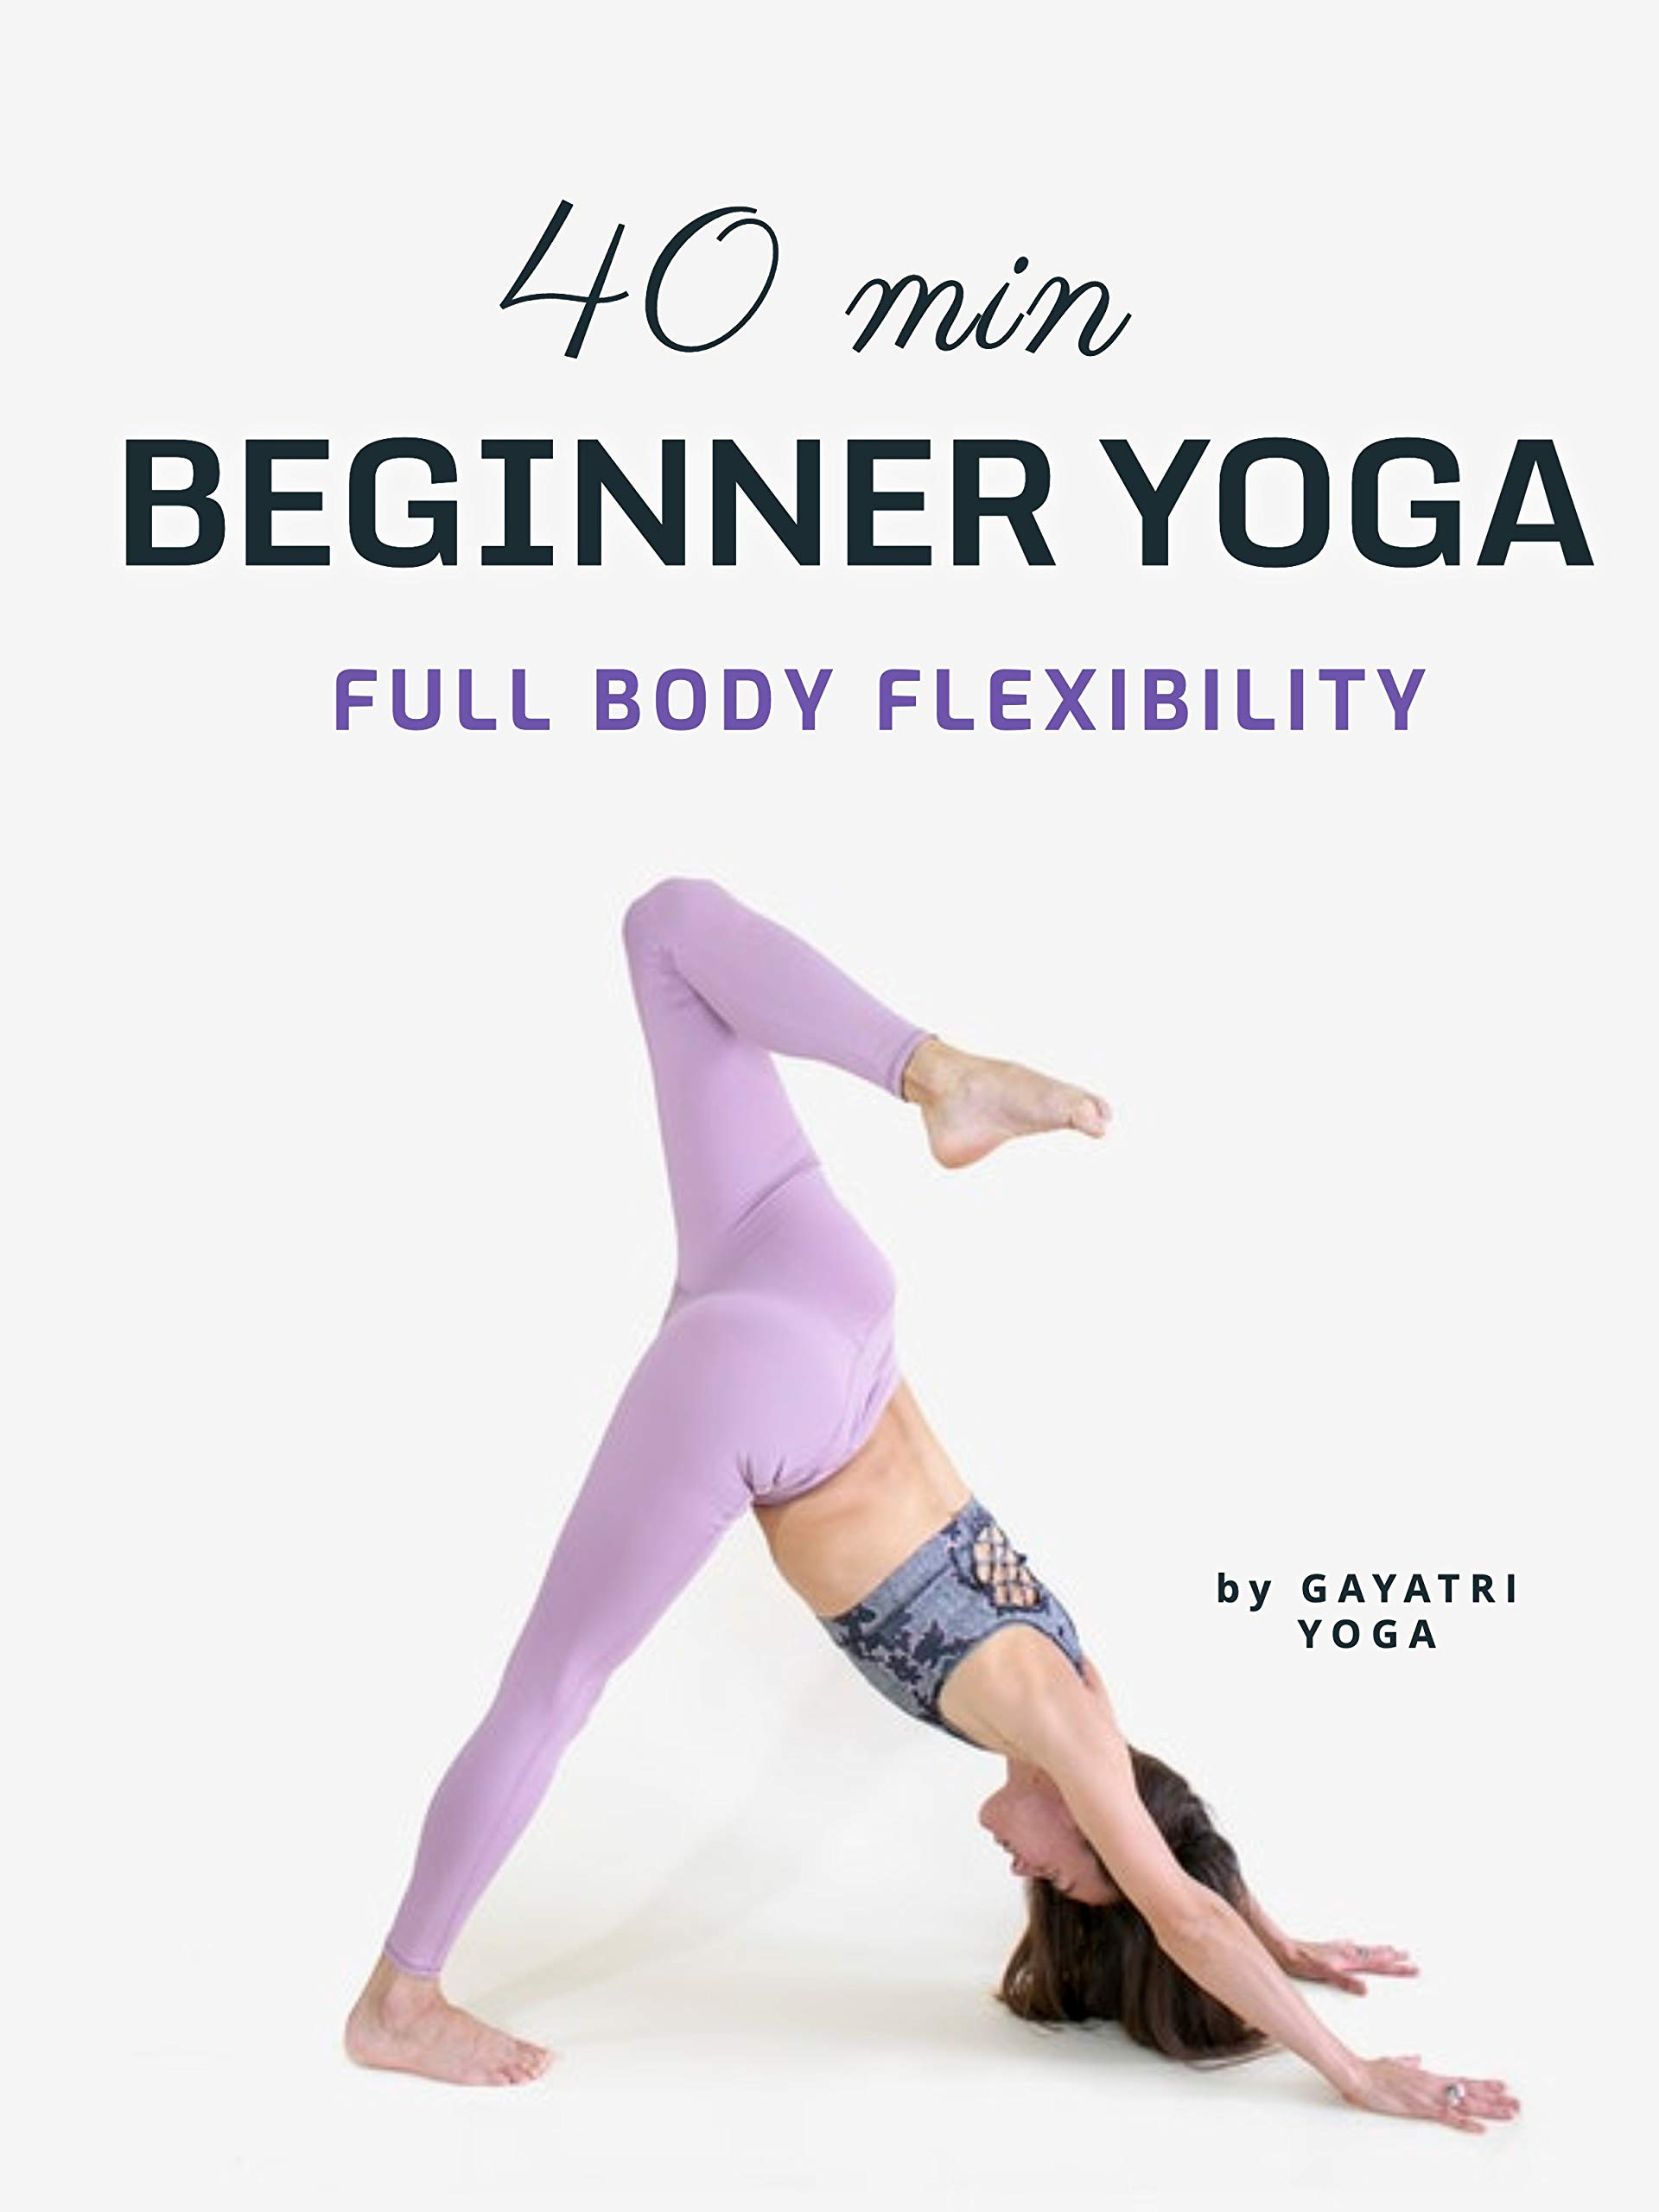 40 Min Yoga - Beginner Flexibility Flow - Gayatri Yoga